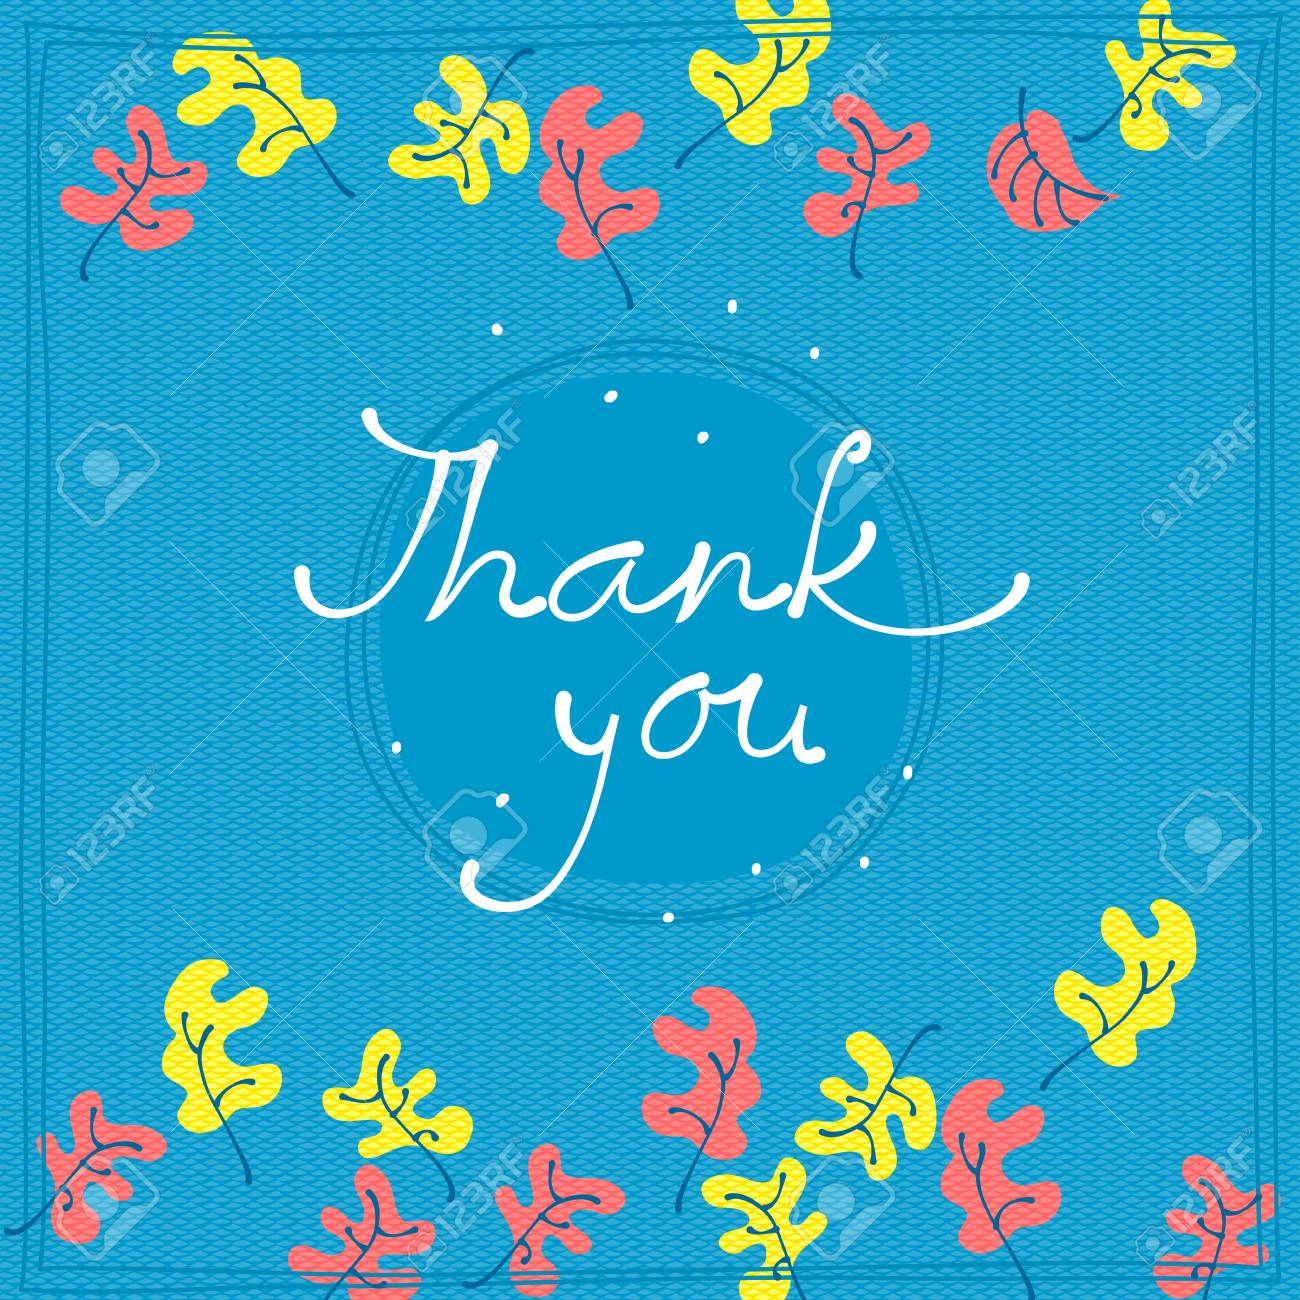 Thank You Card Design Template Simple Greeting Card Elegant Royalty Free Cliparts Vectors And Stock Illustration Image 88543282